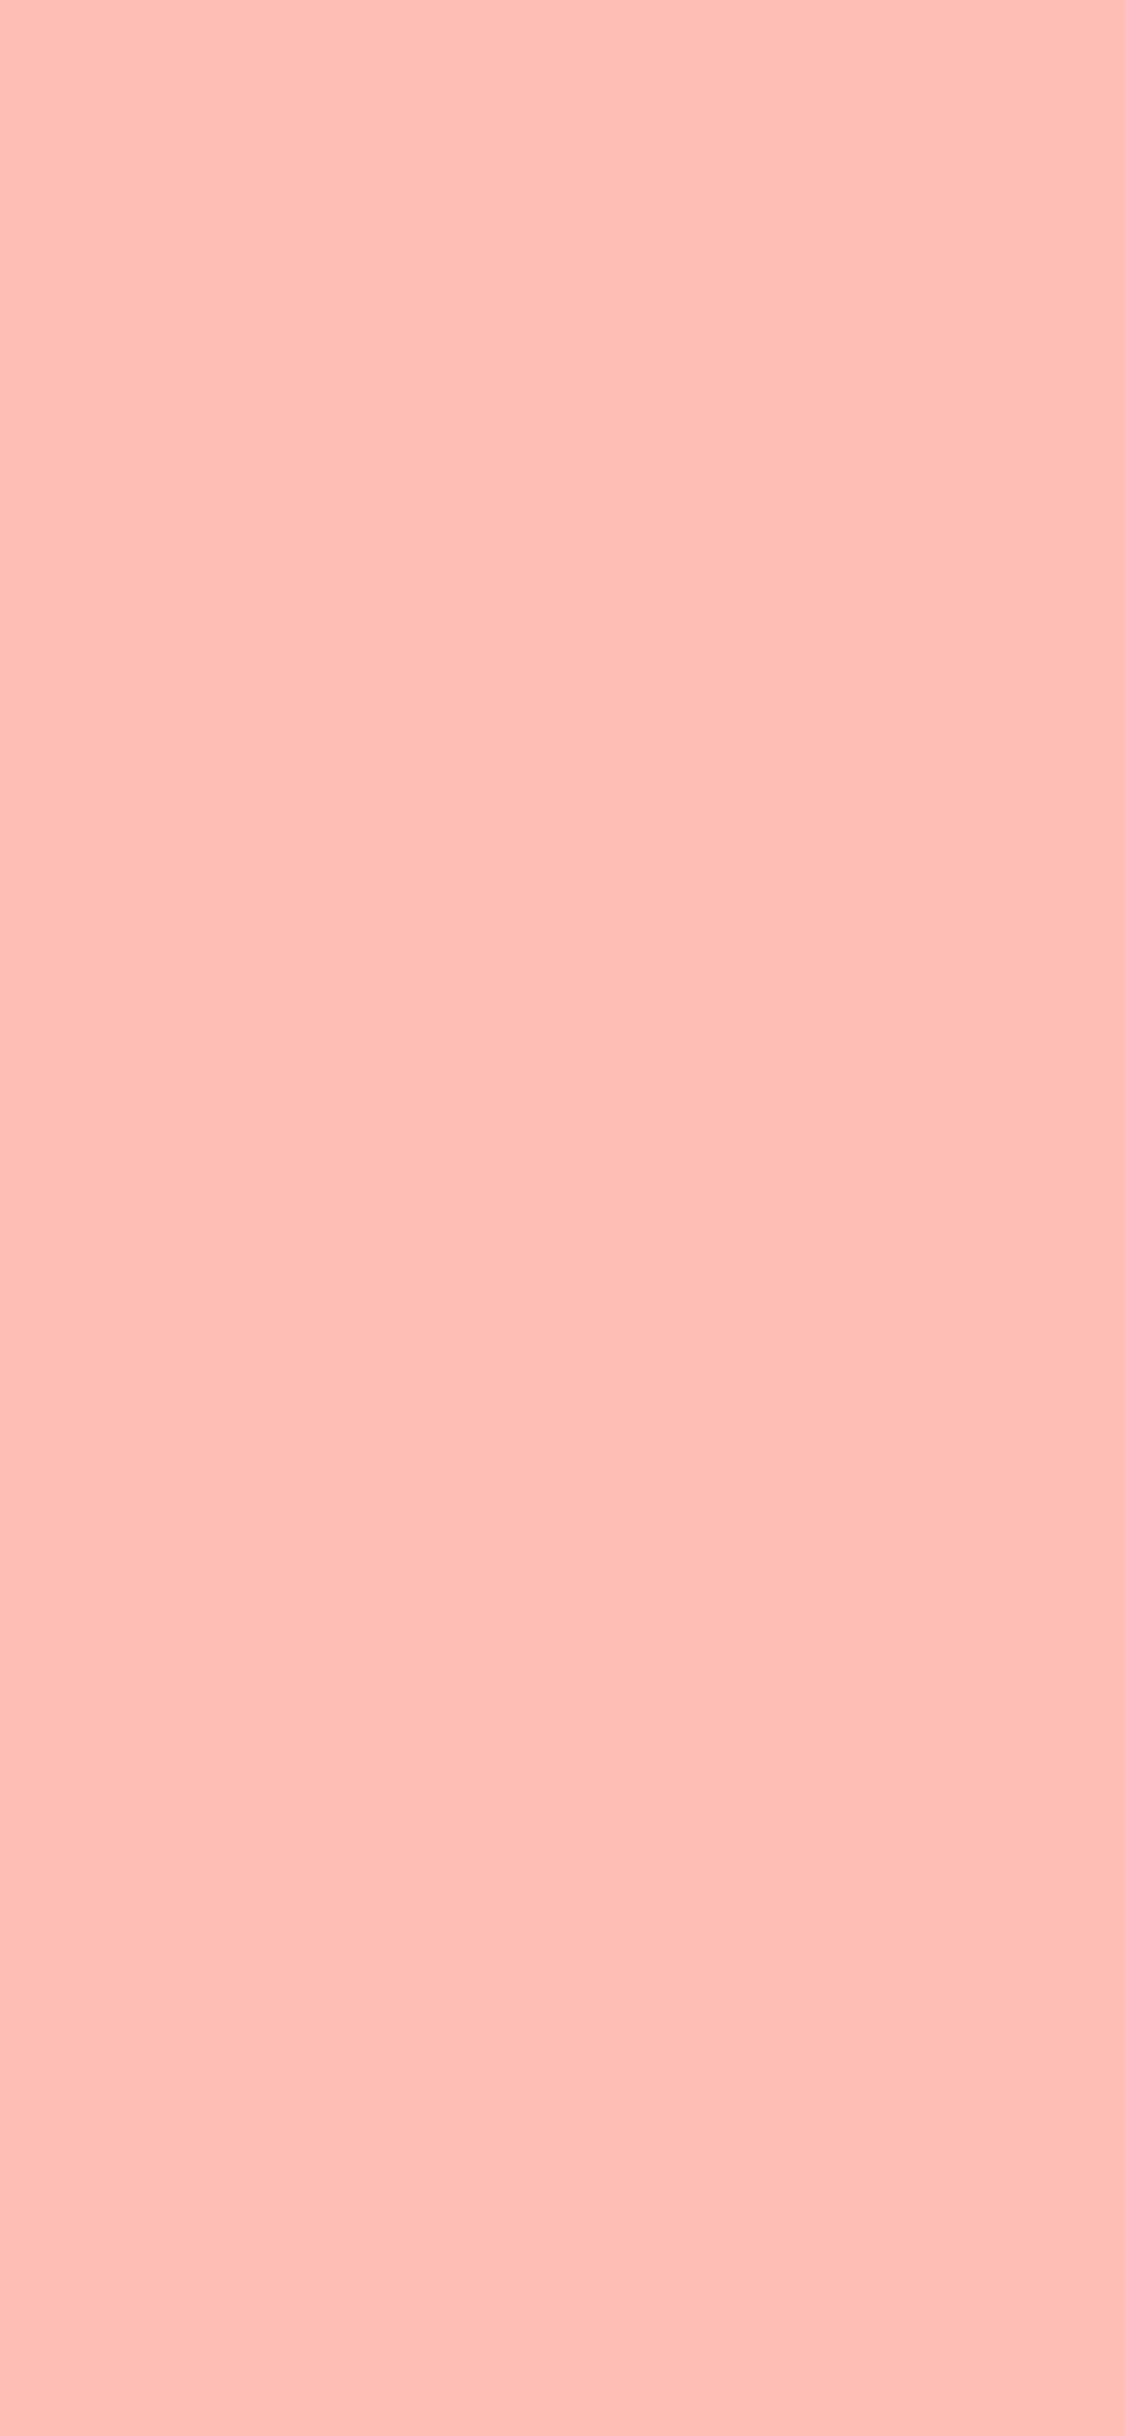 1125x2436 Melon Solid Color Background